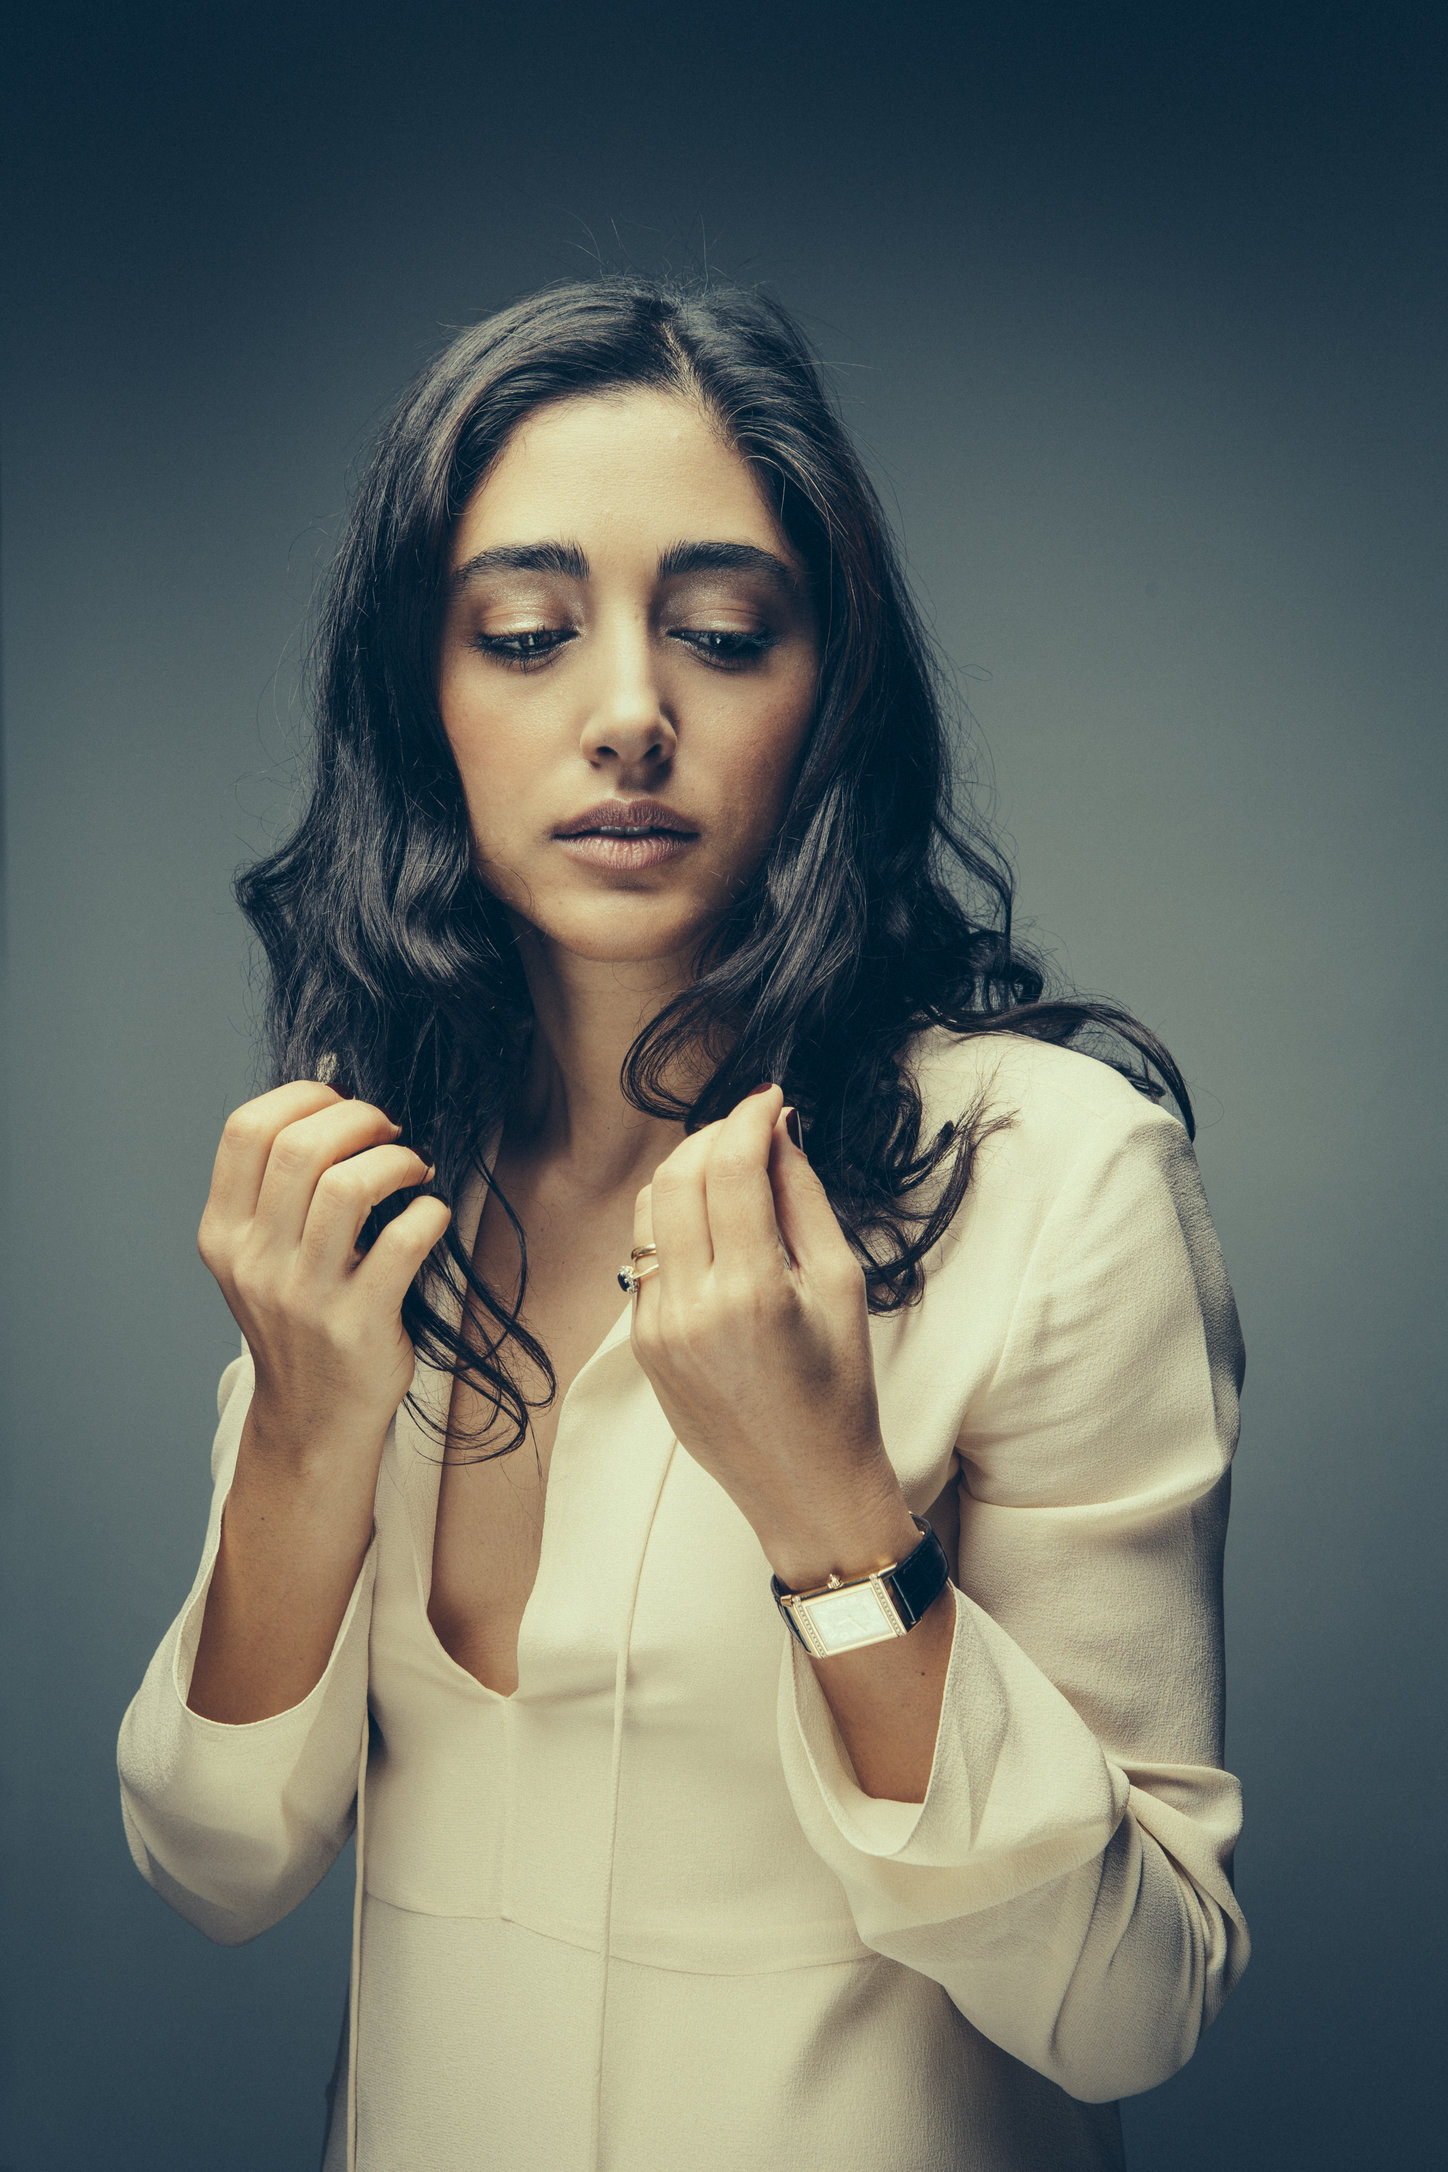 golshifteh farahani, actress